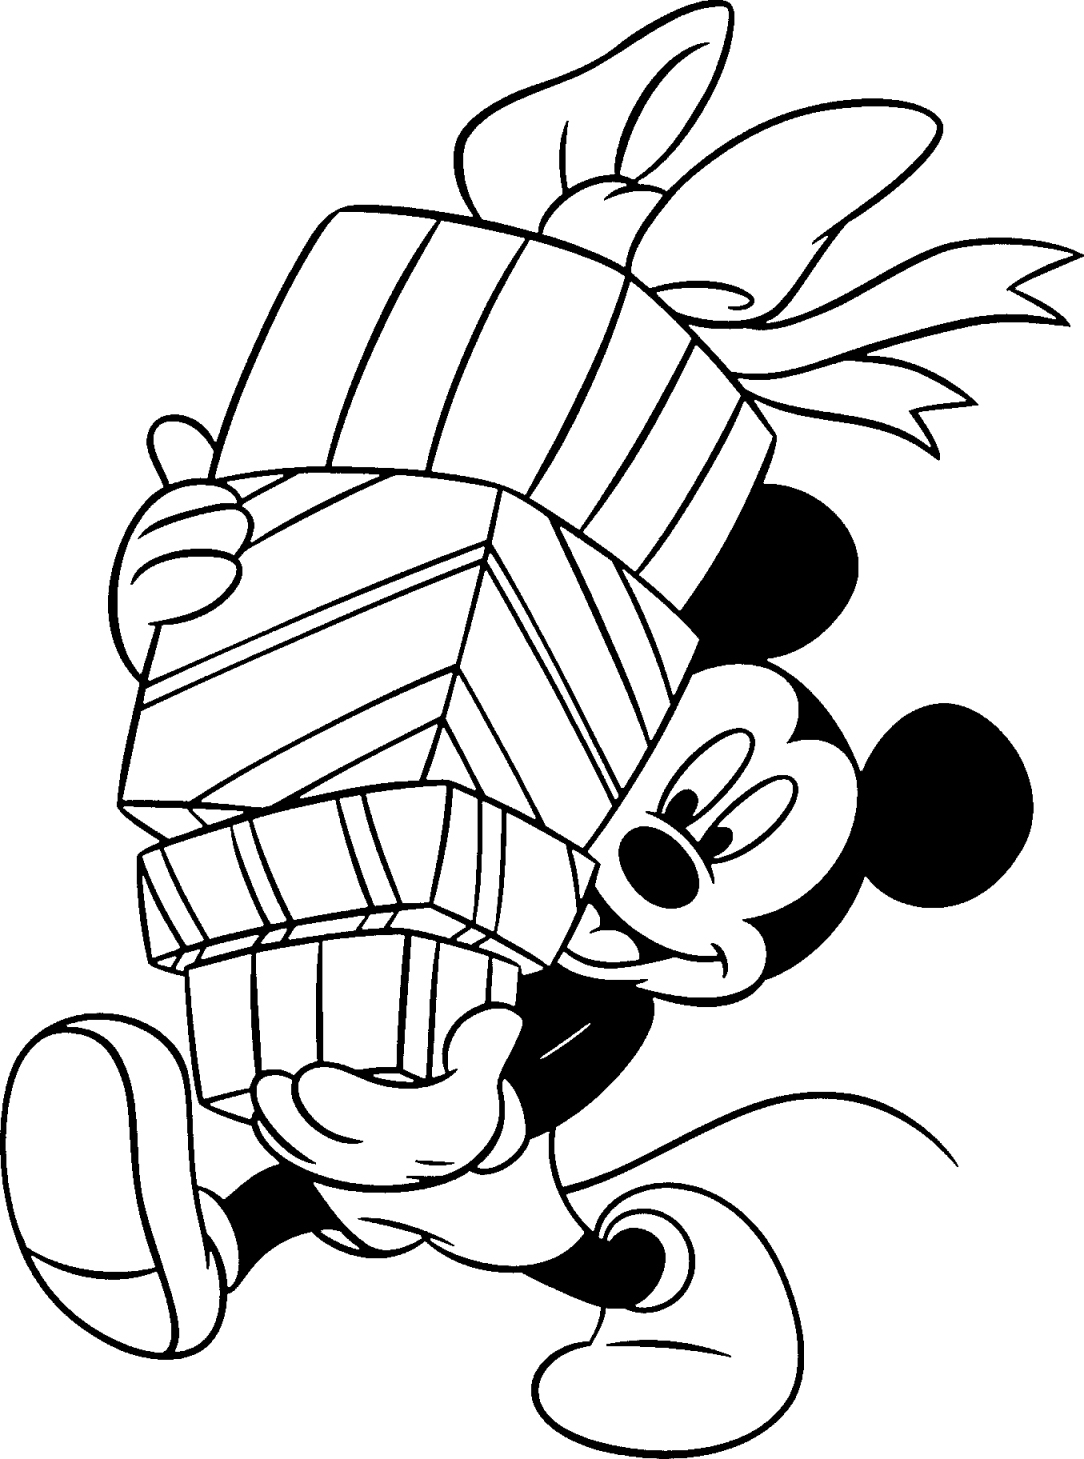 disney thanksgiving coloring page archives coloring website